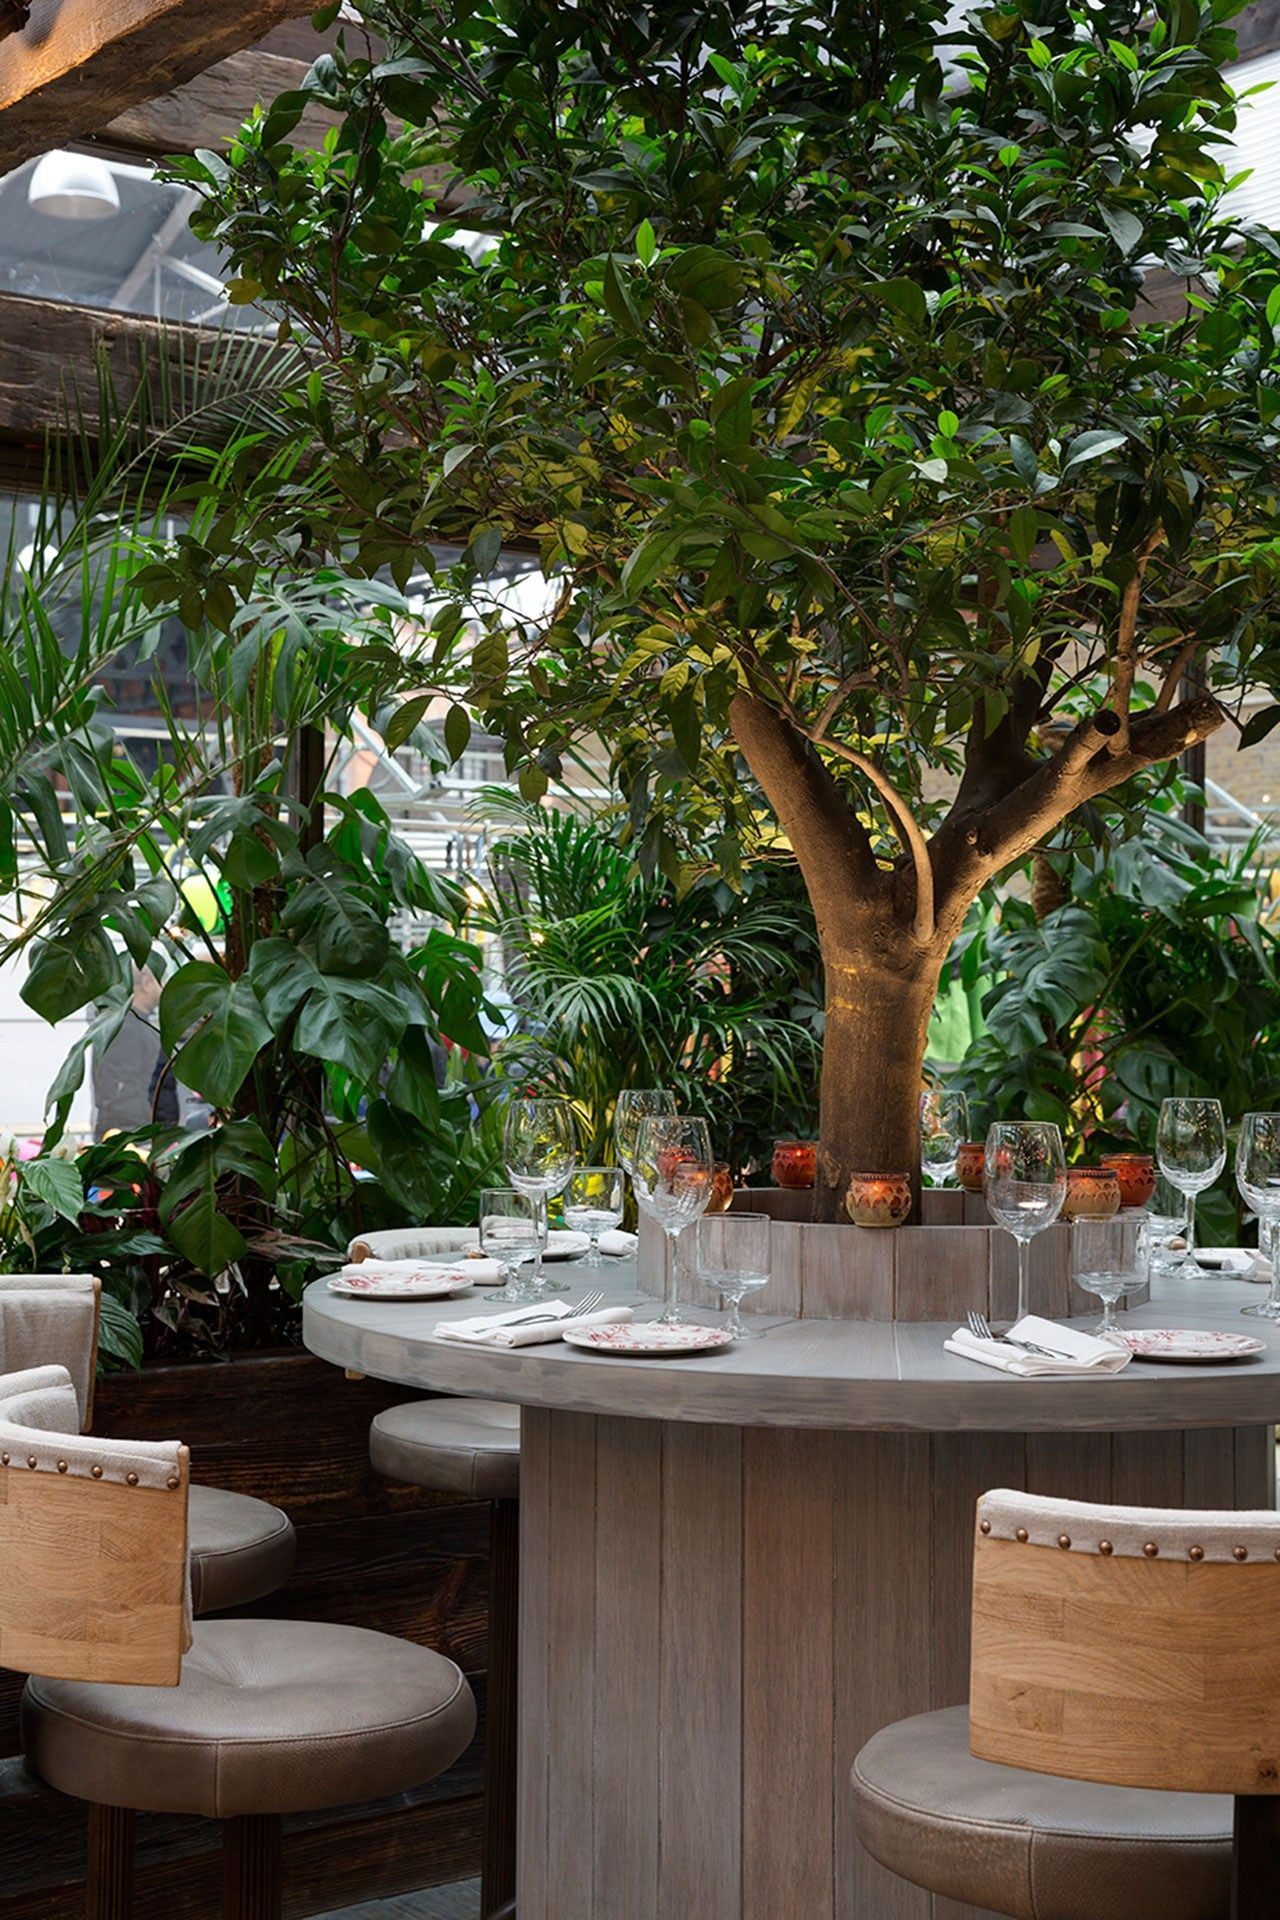 The Best London Restaurants With A Garden To Visit This Summer is part of Terrace restaurant - Dine alfresco in one of the best garden restaurants London has to offer this summer  Whichever part of London you are looking for an outdoor restaurant in, find the perfect restaurant with Vogue's guide to London restaurants with a garden